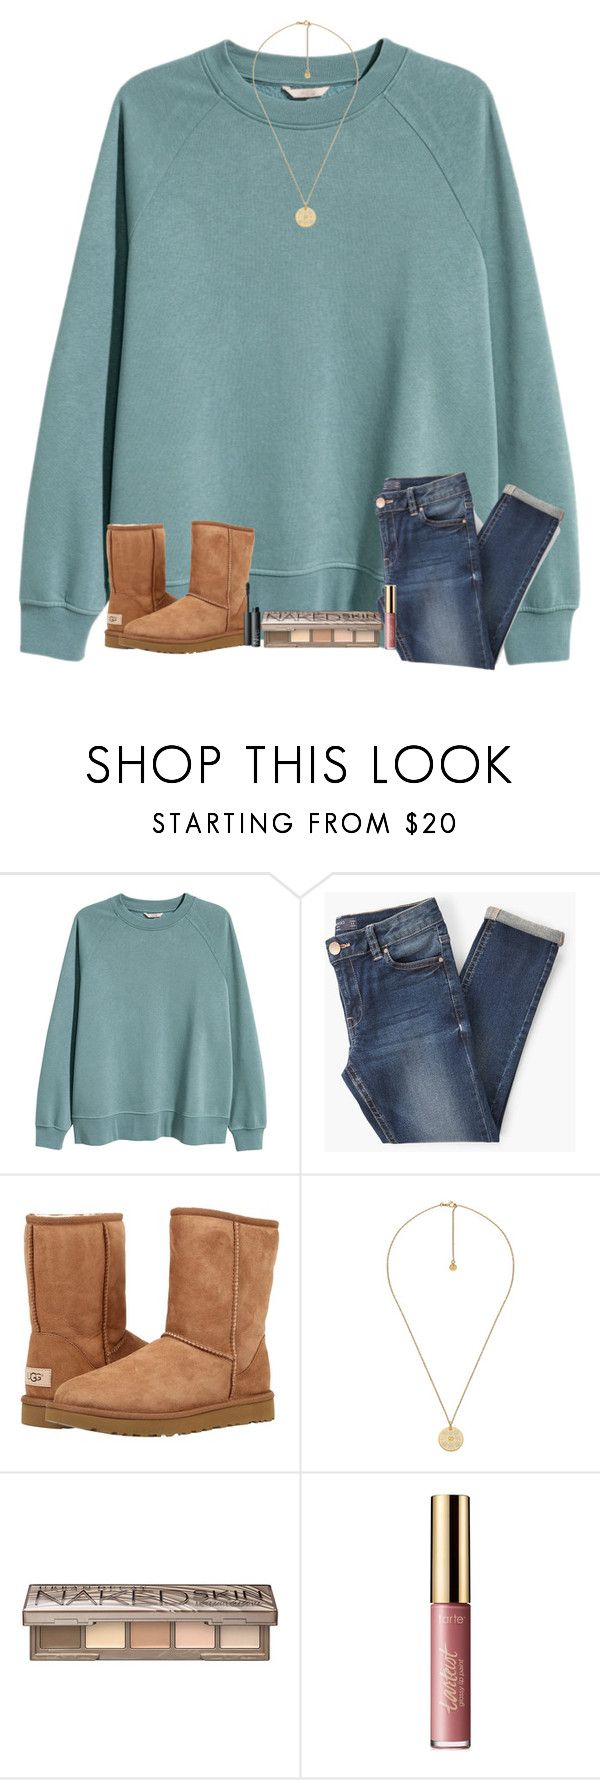 """""""I'm ready for some snow"""" by tjrsis ❤ liked on Polyvore featuring H&M, UGG Australia, Gucci, Urban Decay, tarte and NARS Cosmetics"""